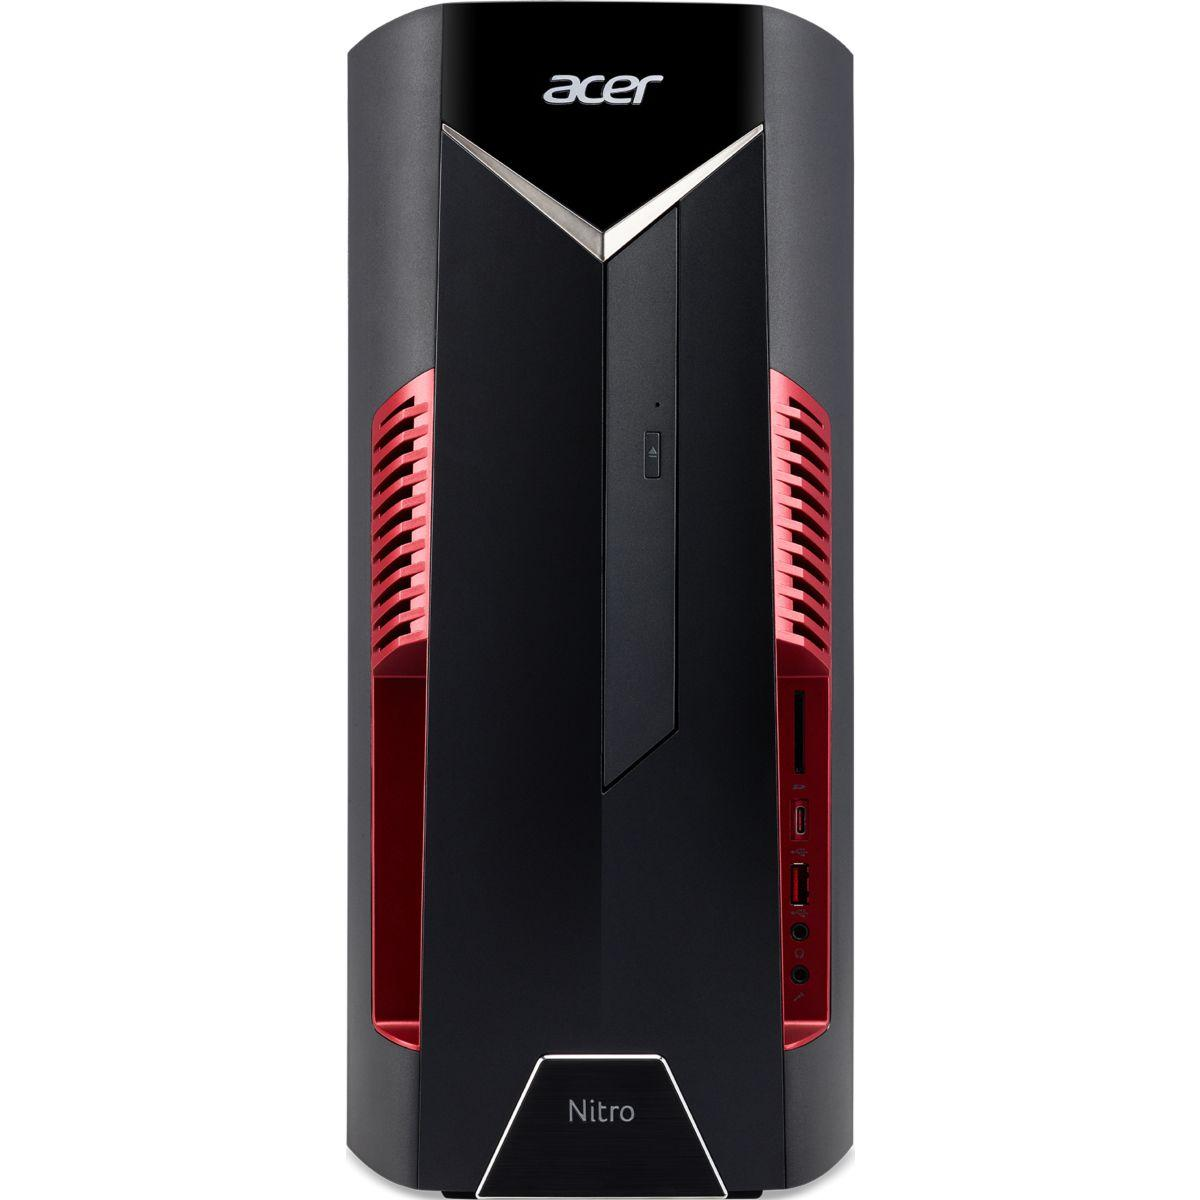 Pc gamer acer nitro n50-600 (photo)